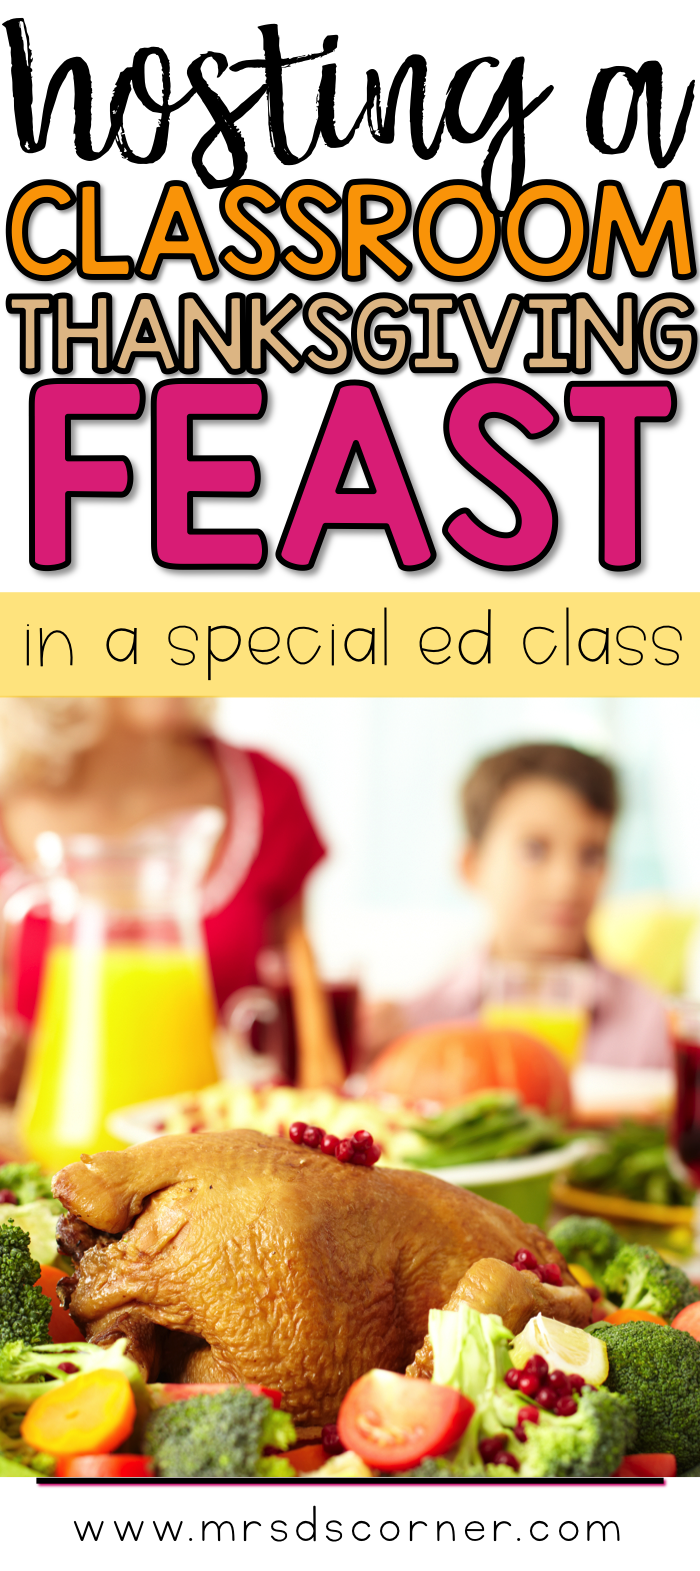 hosting a classroom thanksgiving feast pin